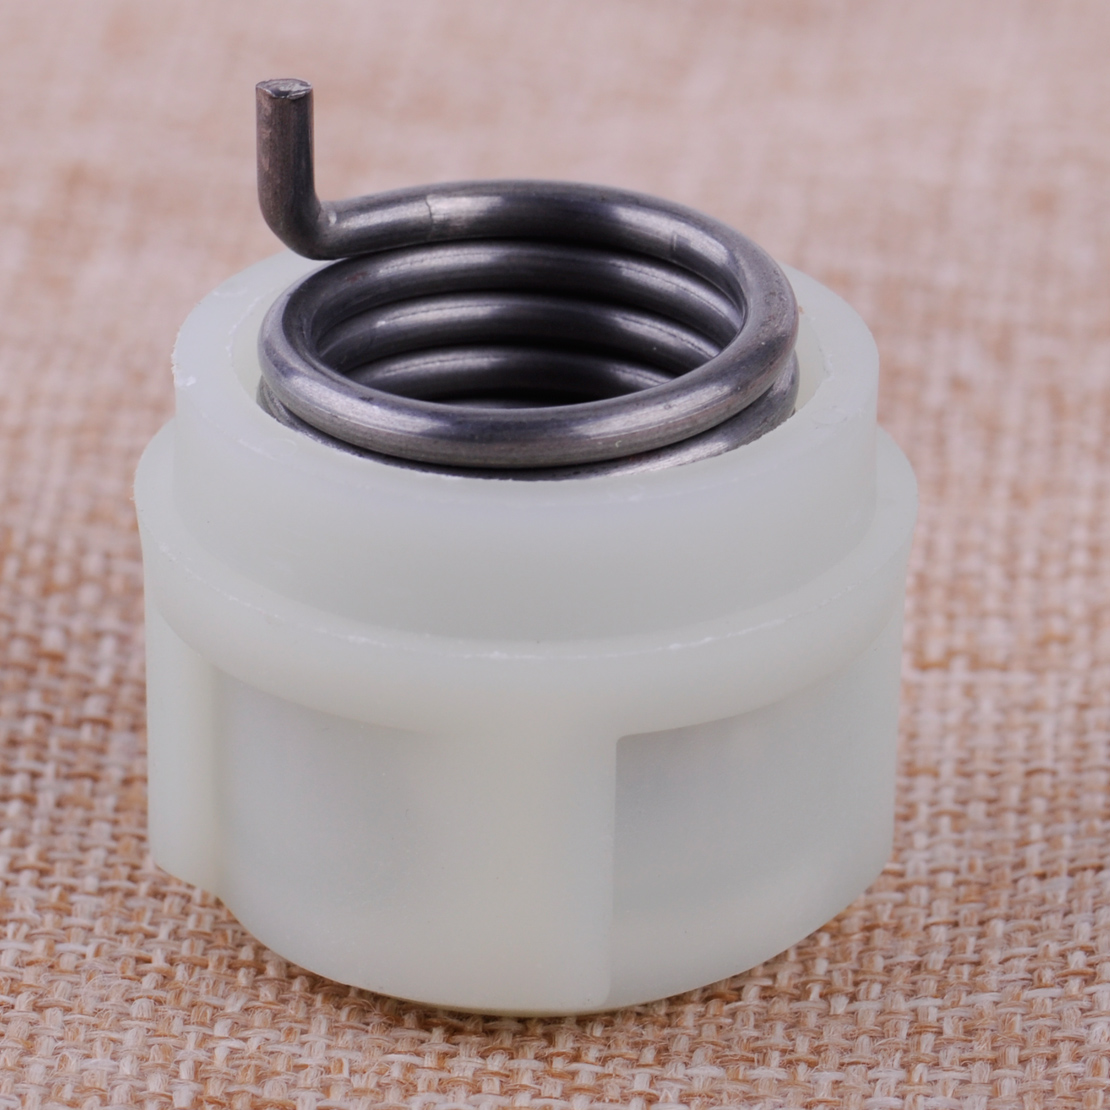 CITALL High Quality Recoil Starter Spring Hub Replacement Fit For Husqvarna 136 137 141 142 Chainsaws 530021180